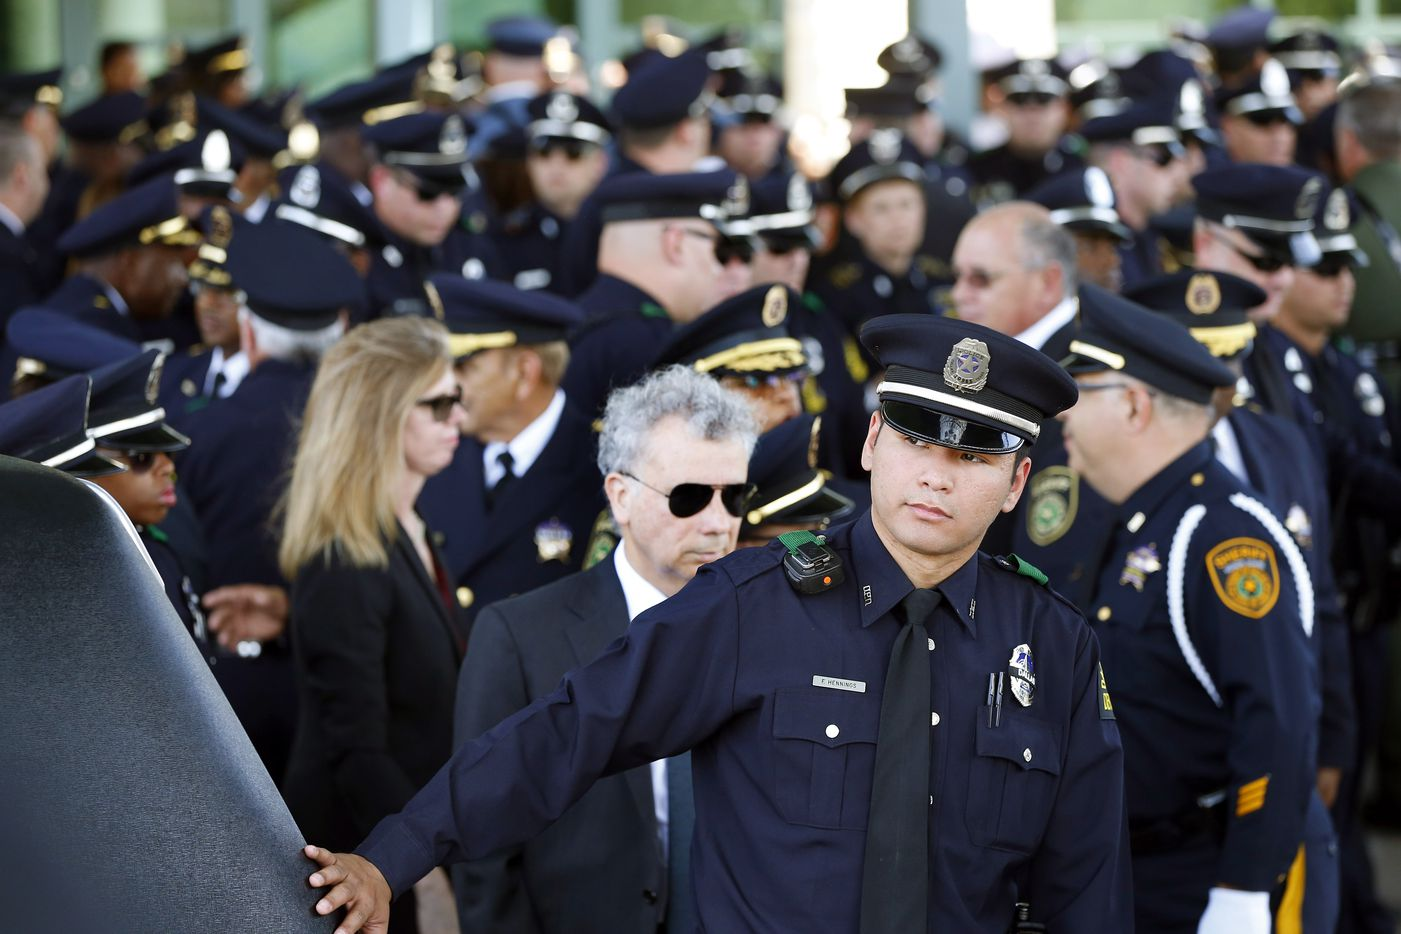 A Dallas police officer runs his hand over the back of the hearse after pallbearers loaded the flag draped casket of fallen Dallas police officer Lorne Ahrens at Prestonwood Baptist Church in Plano, Wednesday, July 12, 2016.